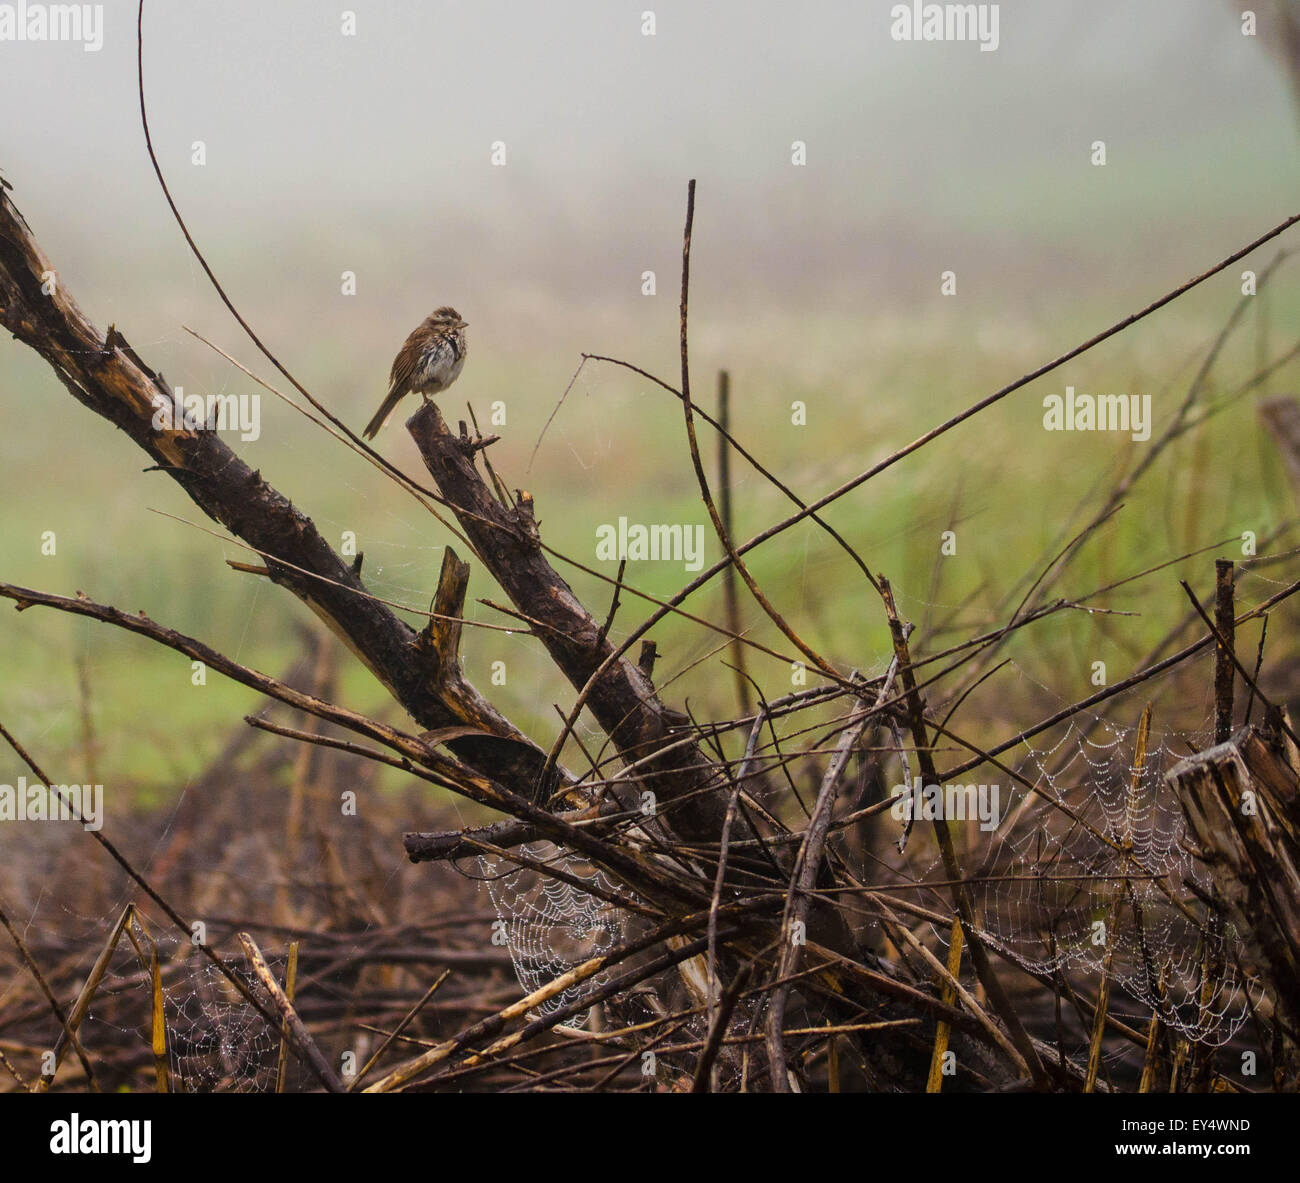 Sparrow, webs and fog. - Stock Image